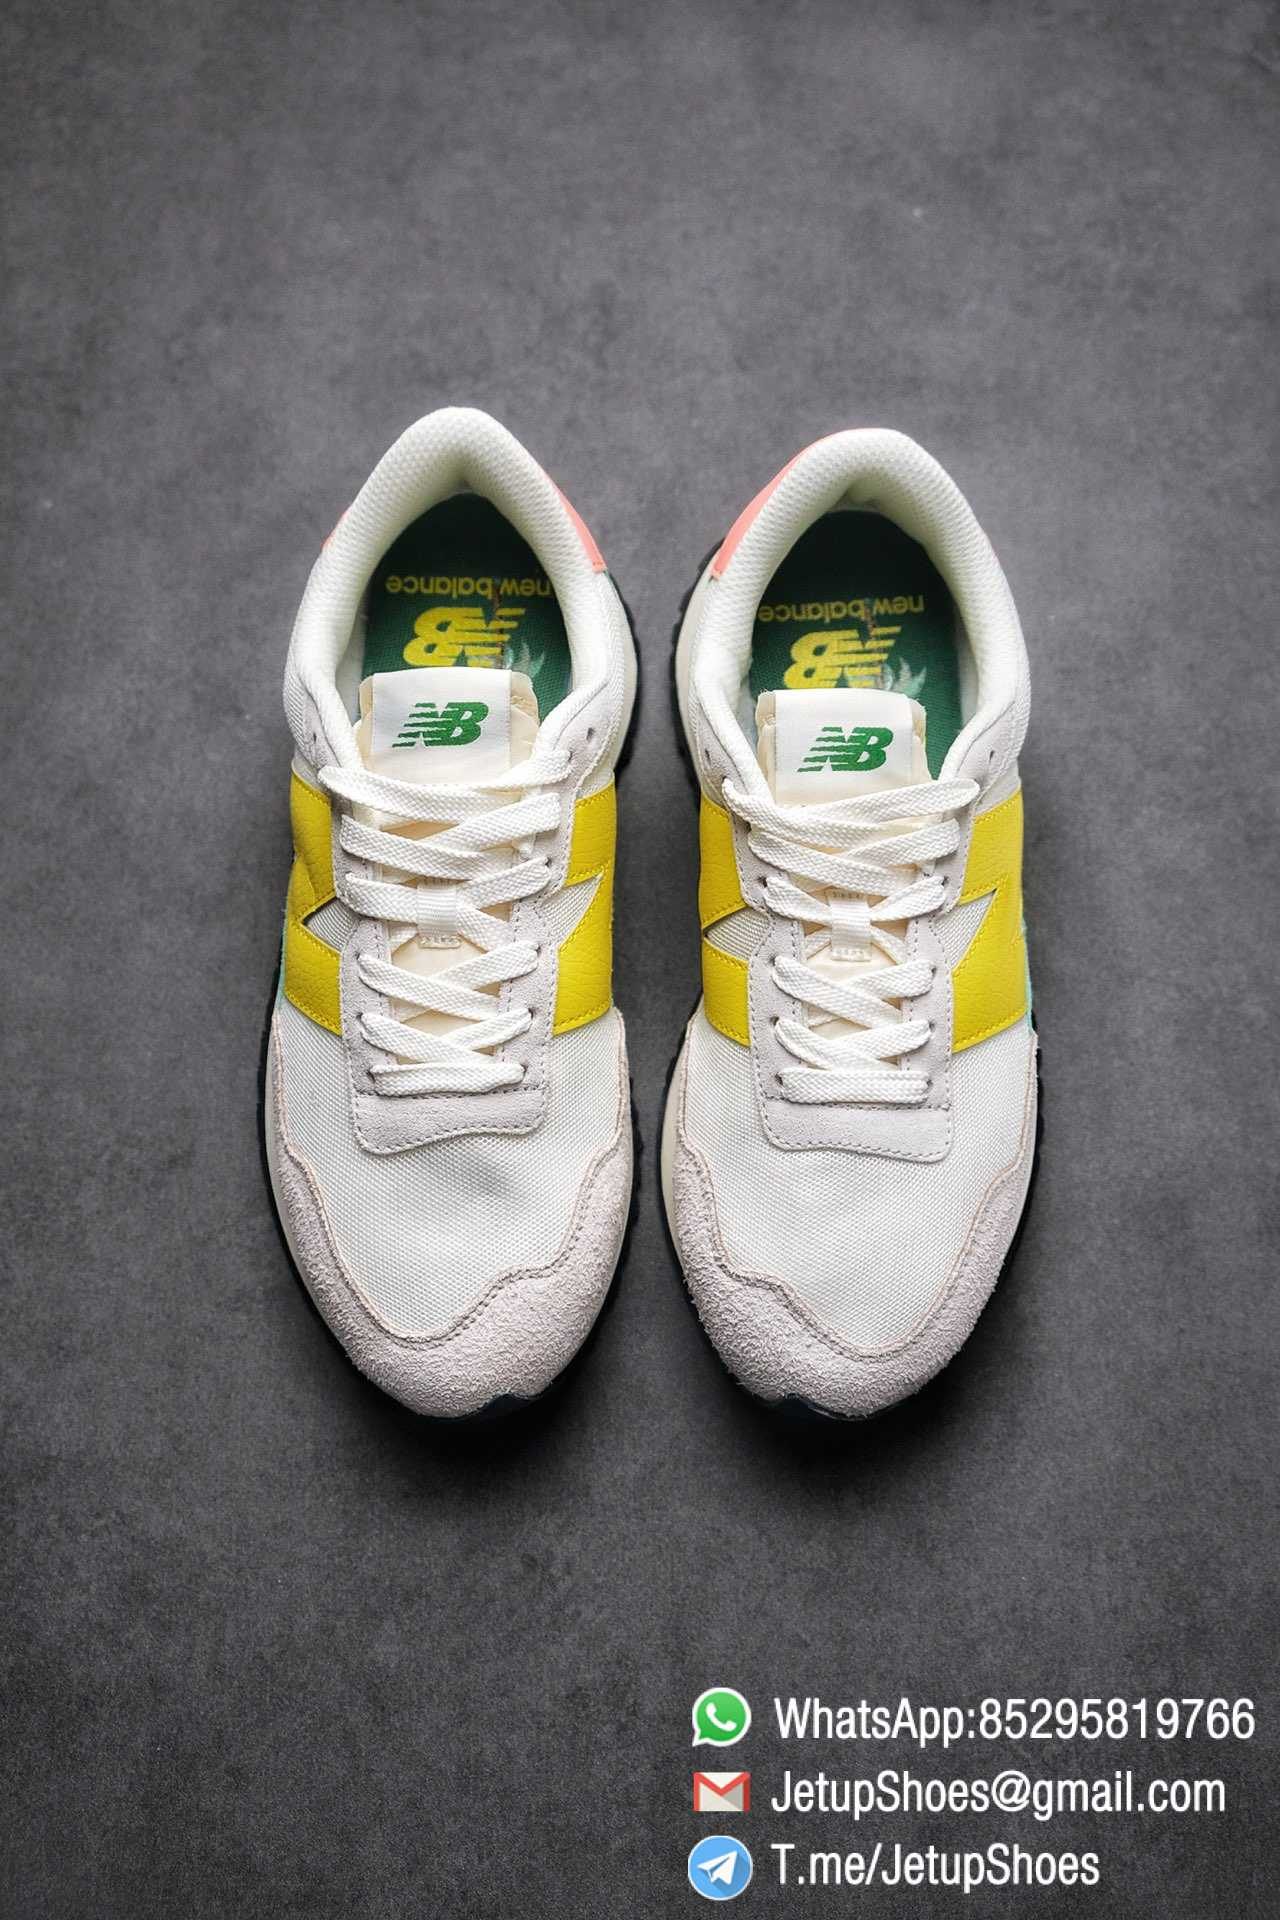 Best Replica New Balance 237 Light Grey Yellow Green Pink Multi Color SKU MS237AS1 High Quality Running Shoes 02